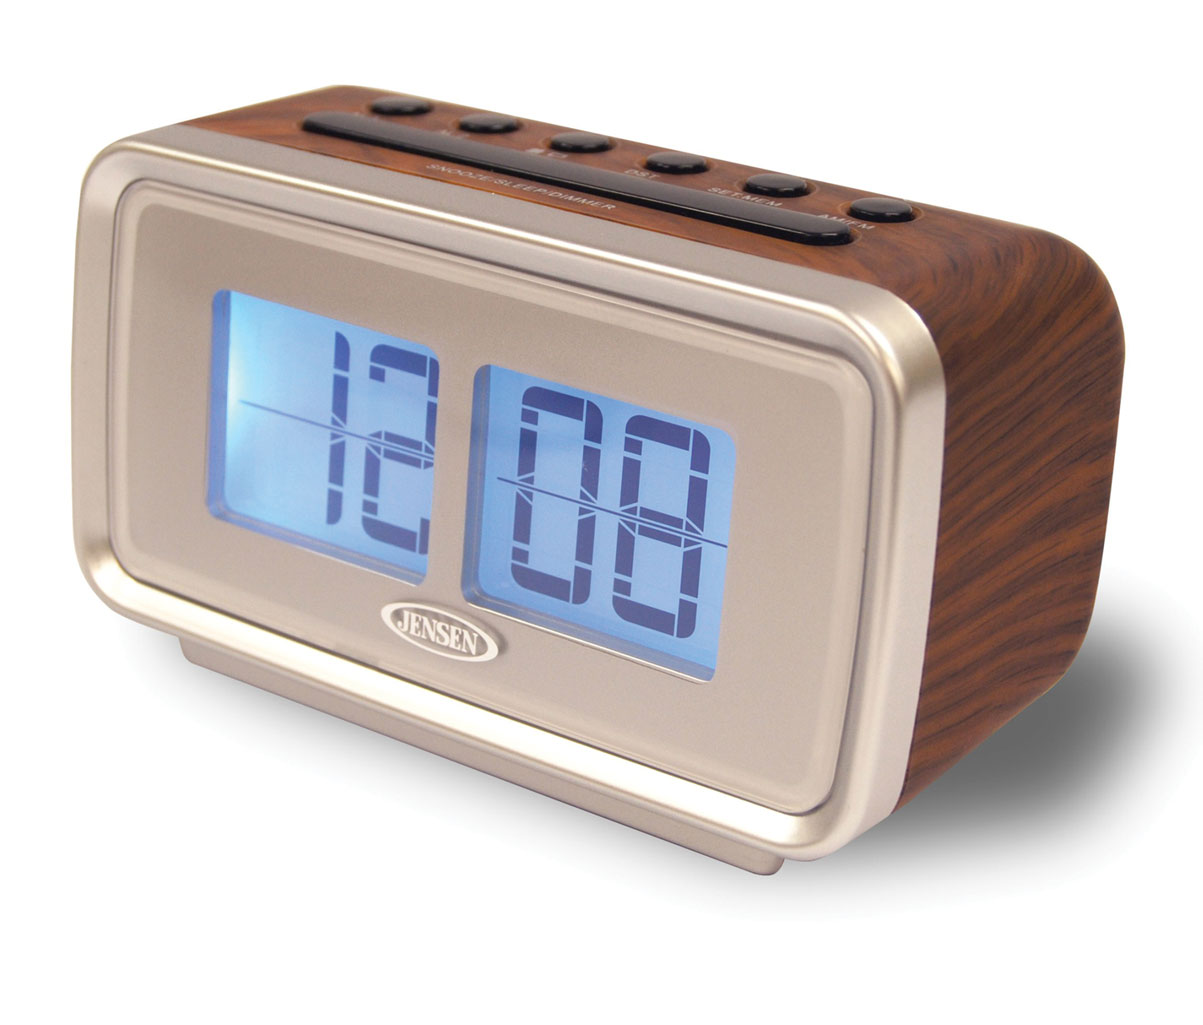 Jensen AM/FM Dual Alarm Clock with Digital Retro Flip Displ You'll flip for this unique clock radio's nostalgic style. Compact Jensen AM/FM dual alarm clock with digital retro flip display features a 1  digital LCD display that mimics the retro flip design from the '60s and '70s. Features include back-lit display with dimmer control, digital AM/FM tuner, calendar, sleep and snooze settings, and dual alarms that allow you to wake to radio or alarm. 120V AC power with battery backup option (batteries not included). Retro alarm clock measures 3  H x 5 1/2  W x 2 1/2  D with 60  L cord.